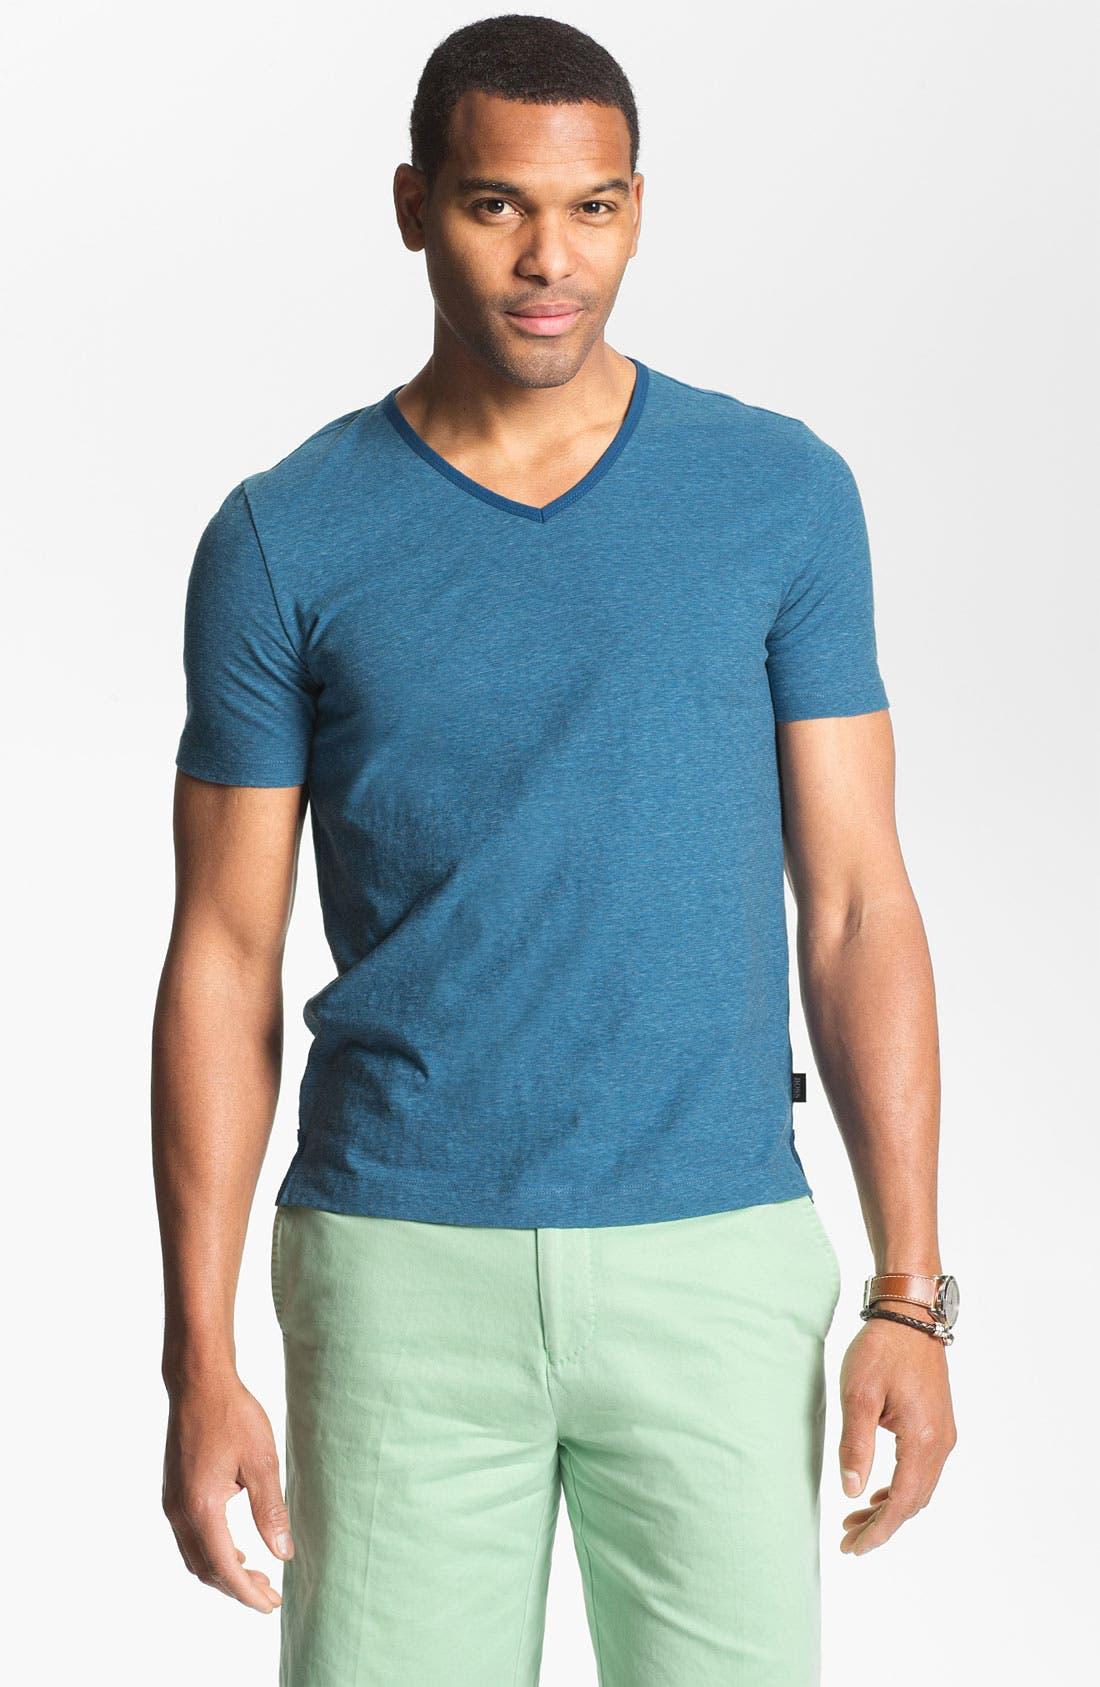 Main Image - BOSS HUGO BOSS 'Eraldo 53' V-Neck T-Shirt